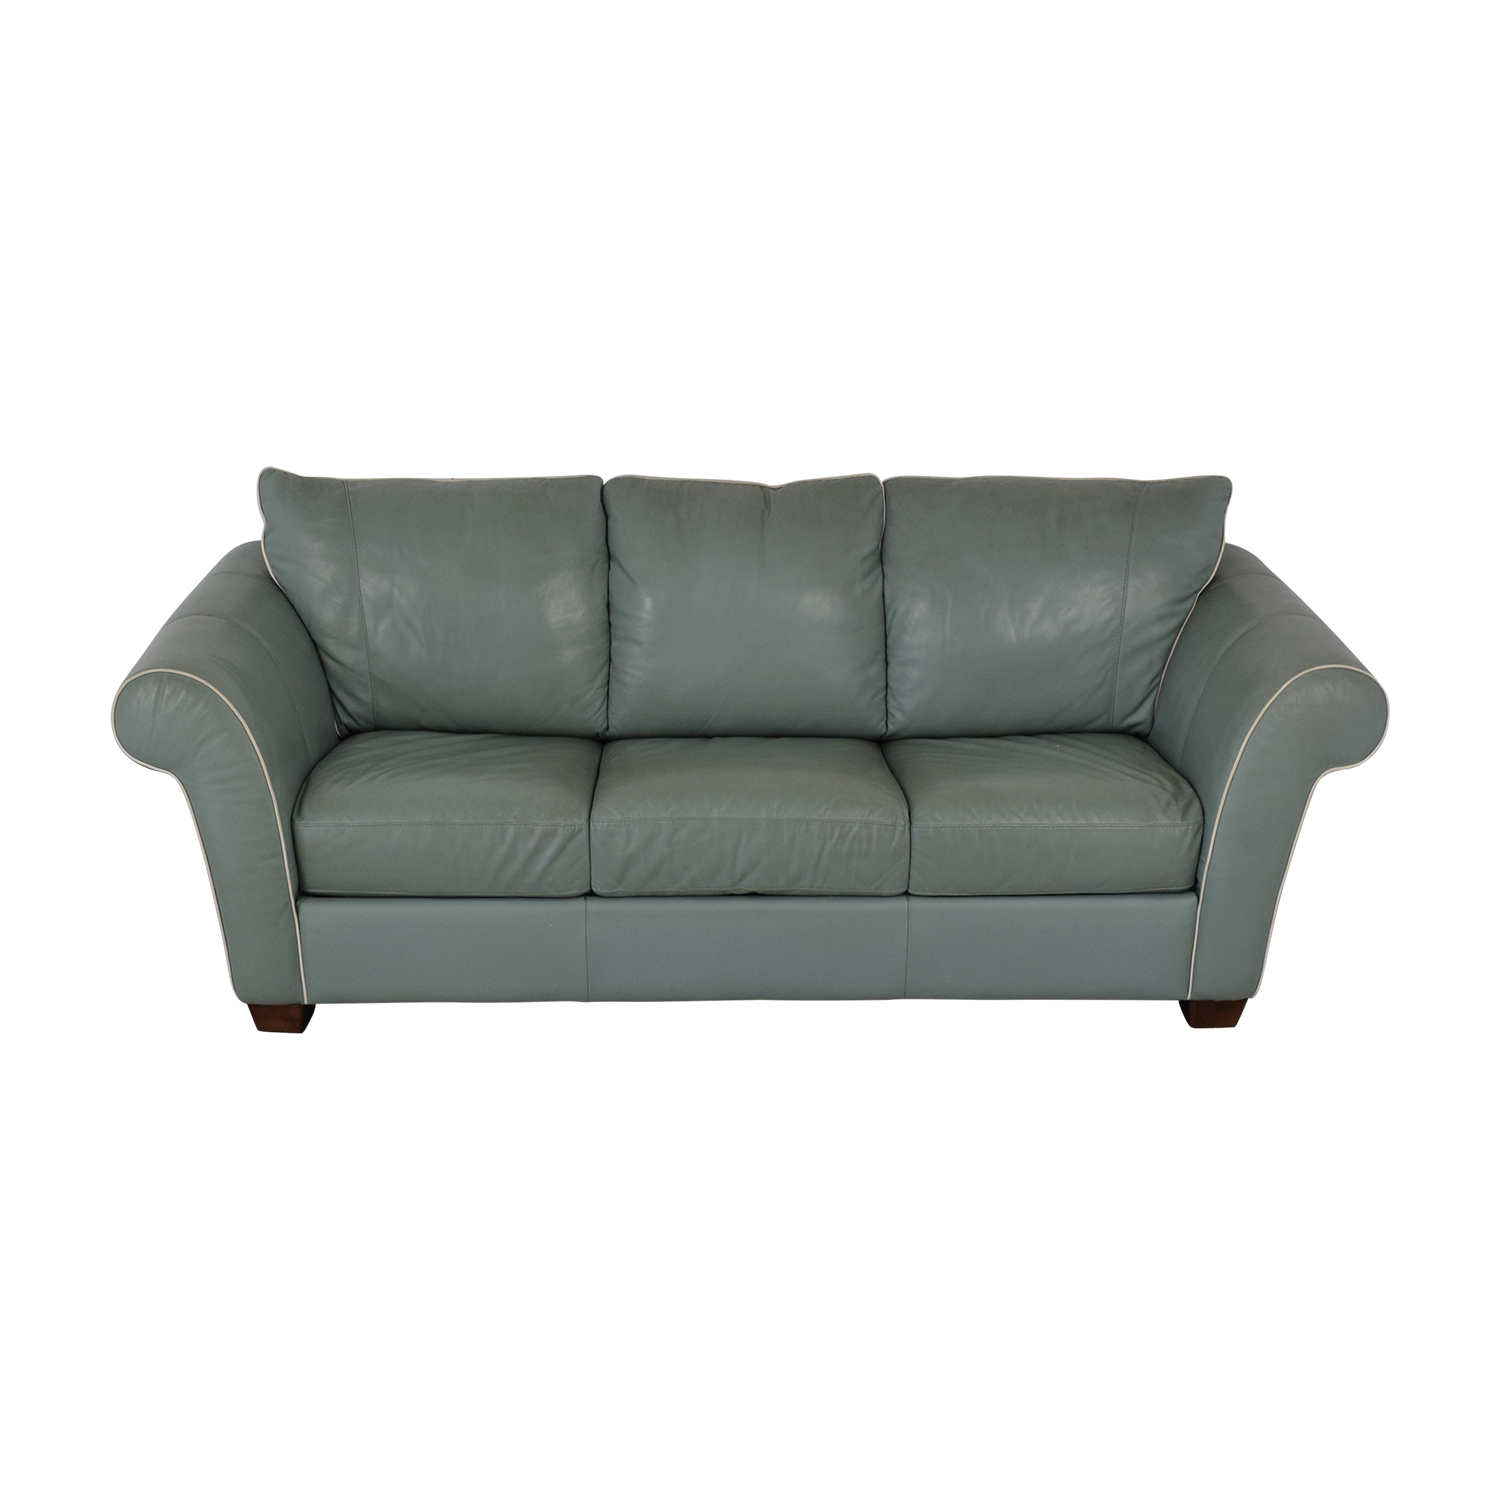 Italsofa Queen Sleeper Sofa sale